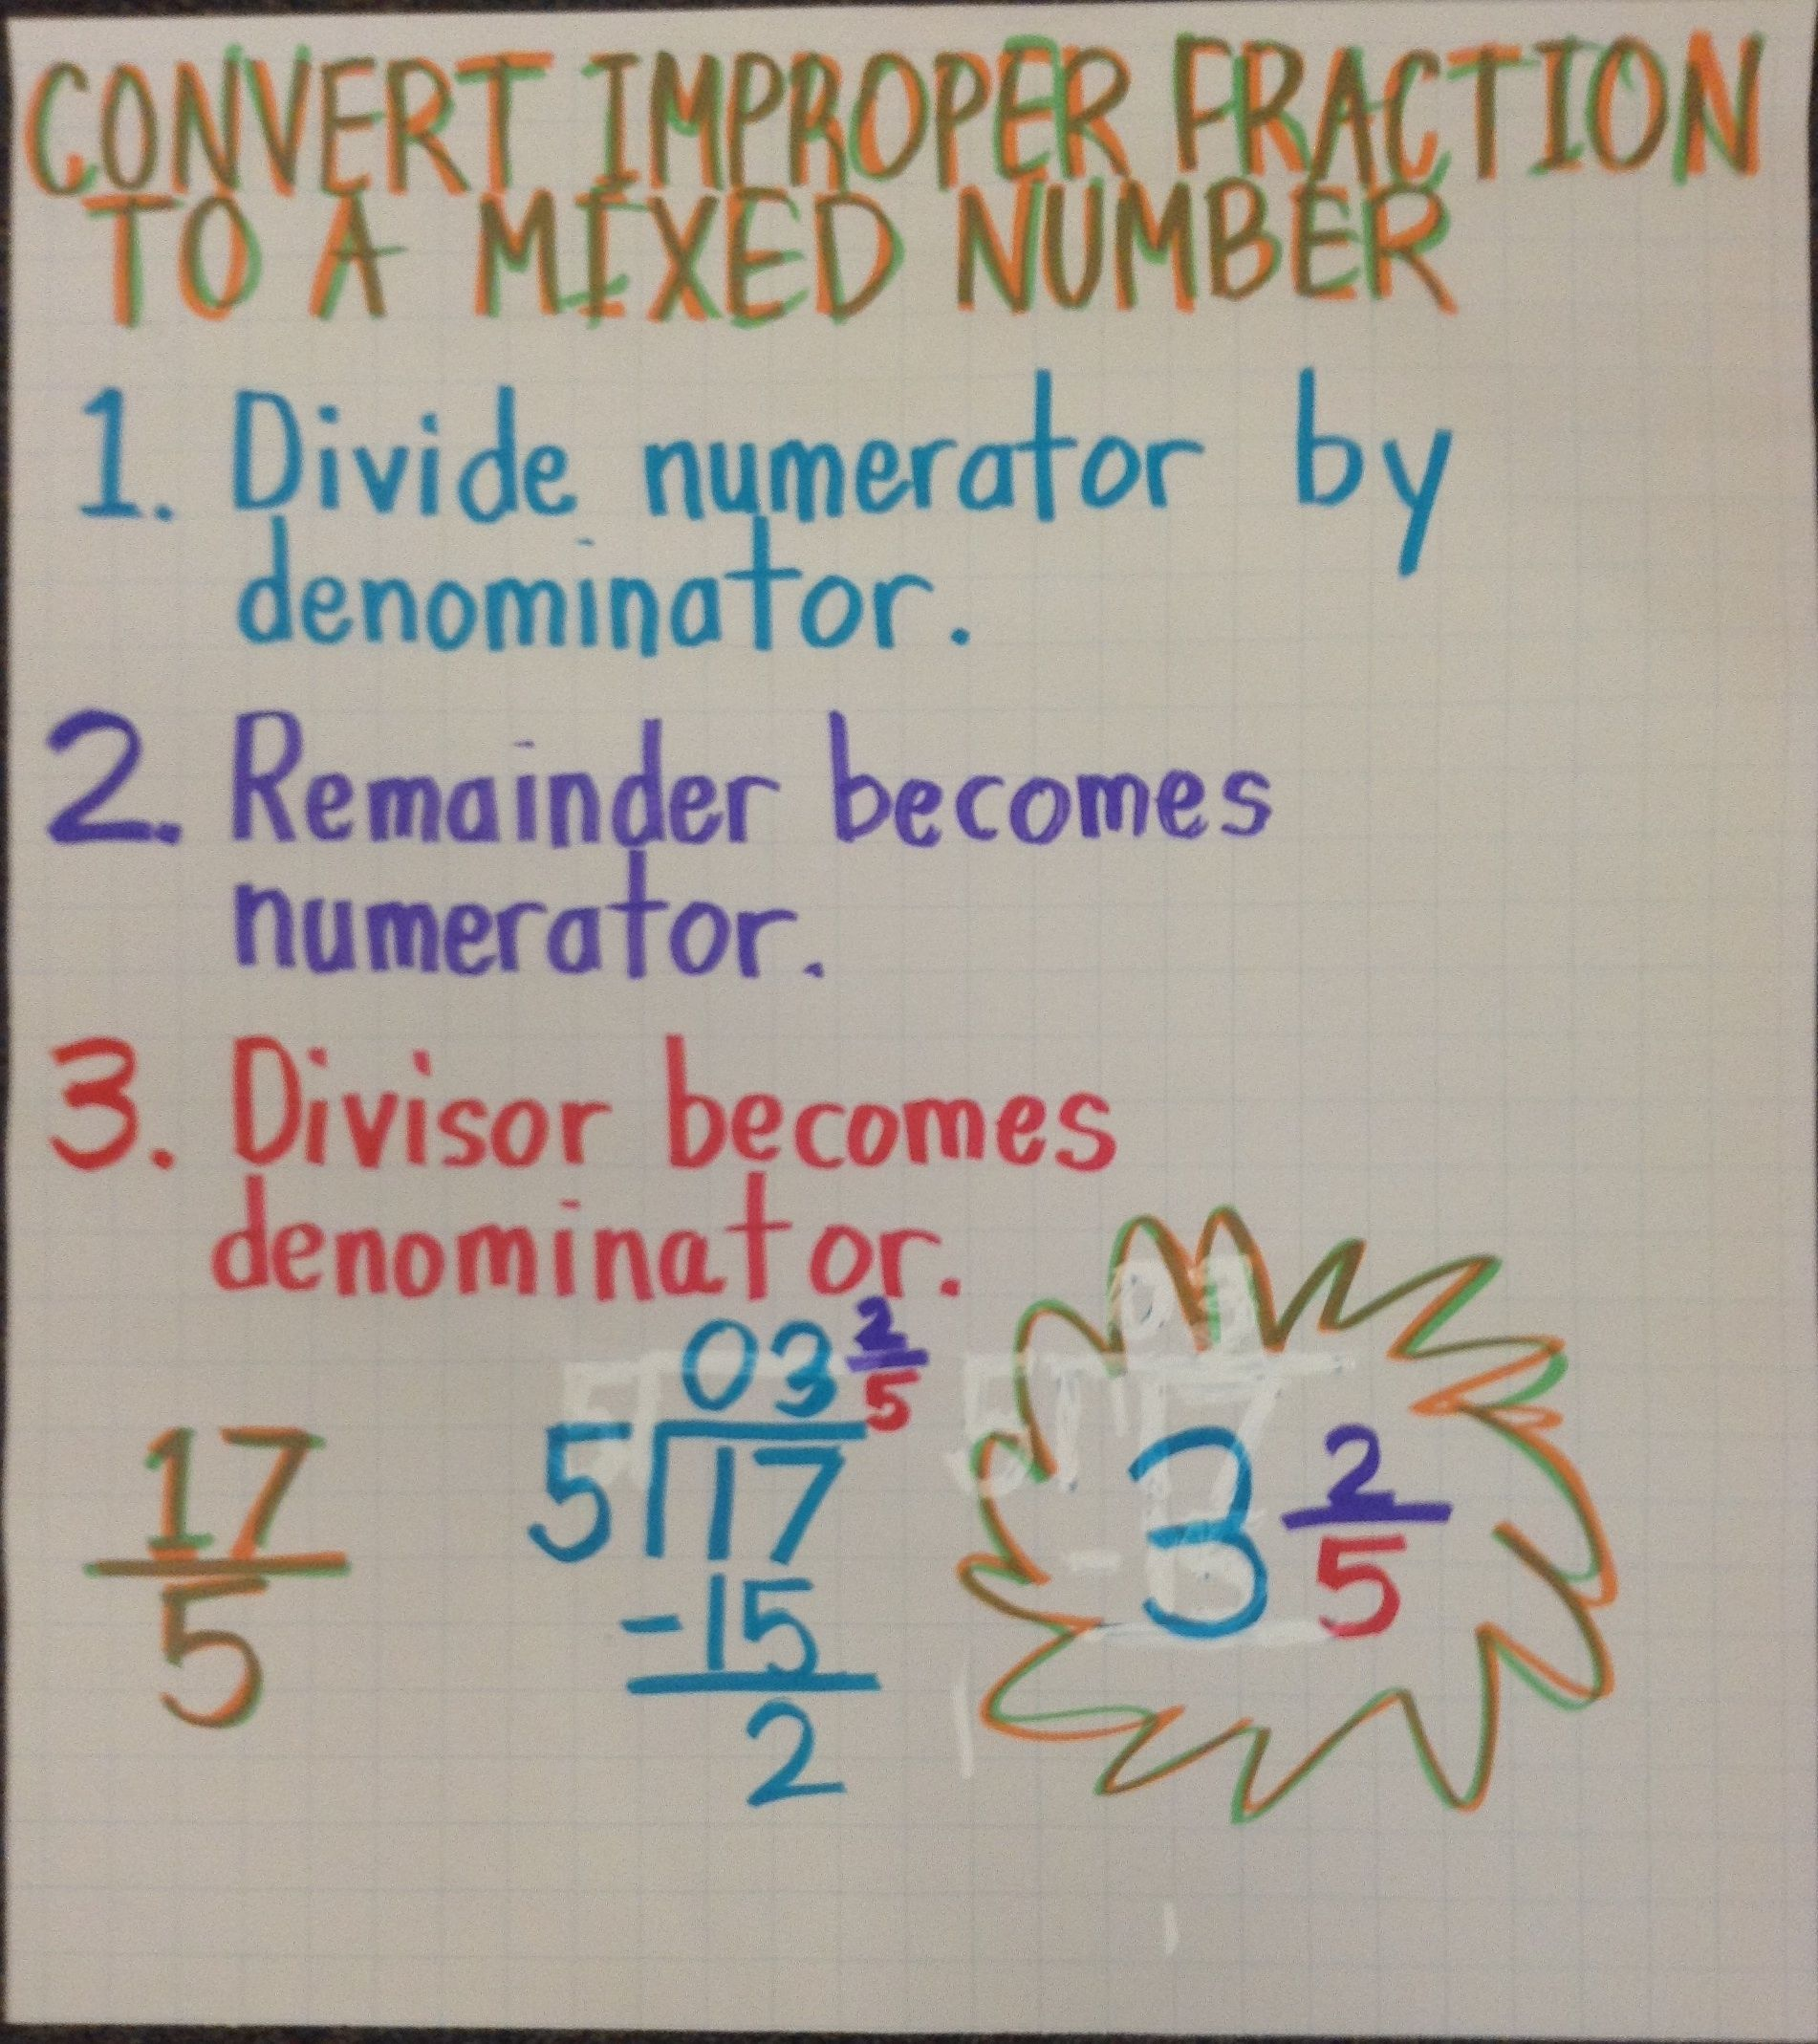 Worksheet Converting Mix Numbers To Improper Fractions adding and subtracting mixed numbers anchor charts for math convert improper fraction to a number